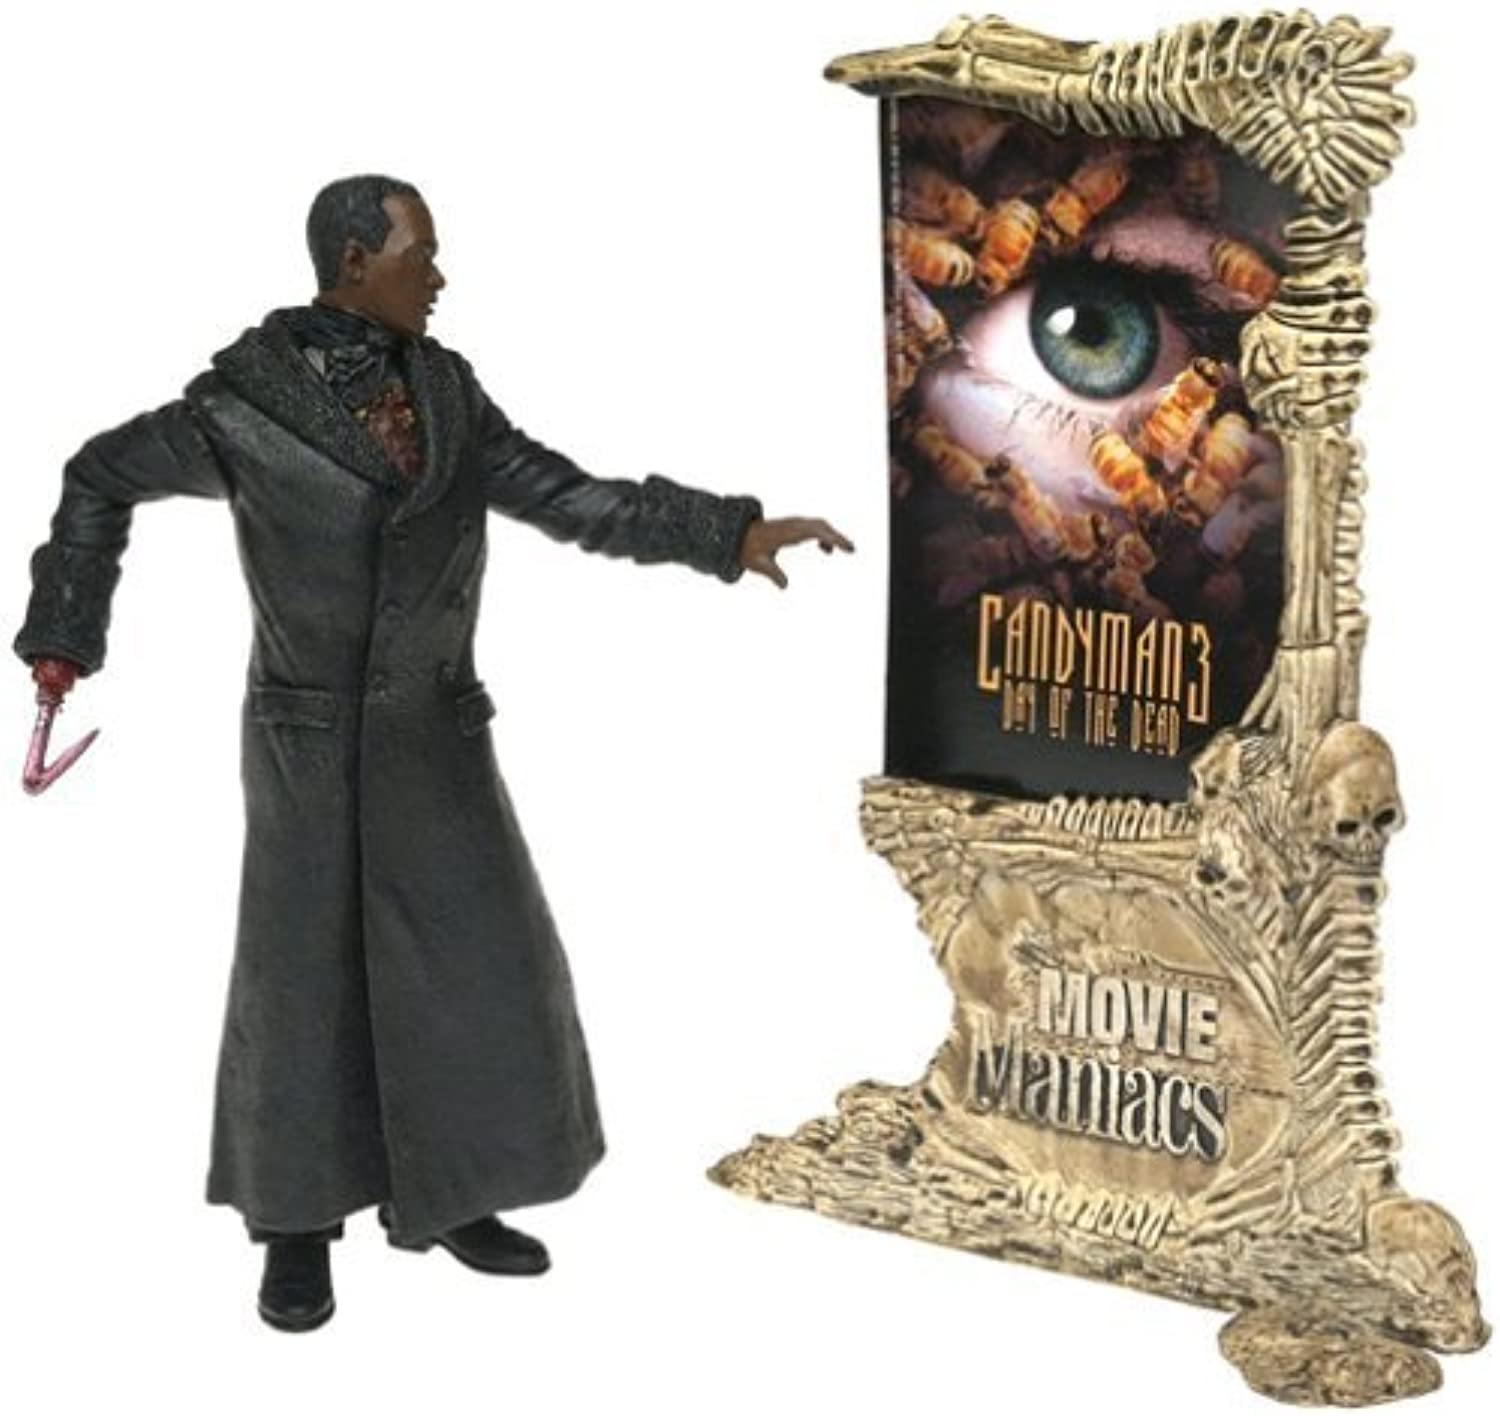 McFarlane Toys Movie Maniacs Series 4 Action Figure Candyman 3 Day of the Dead Candyman by Movie Maniacs